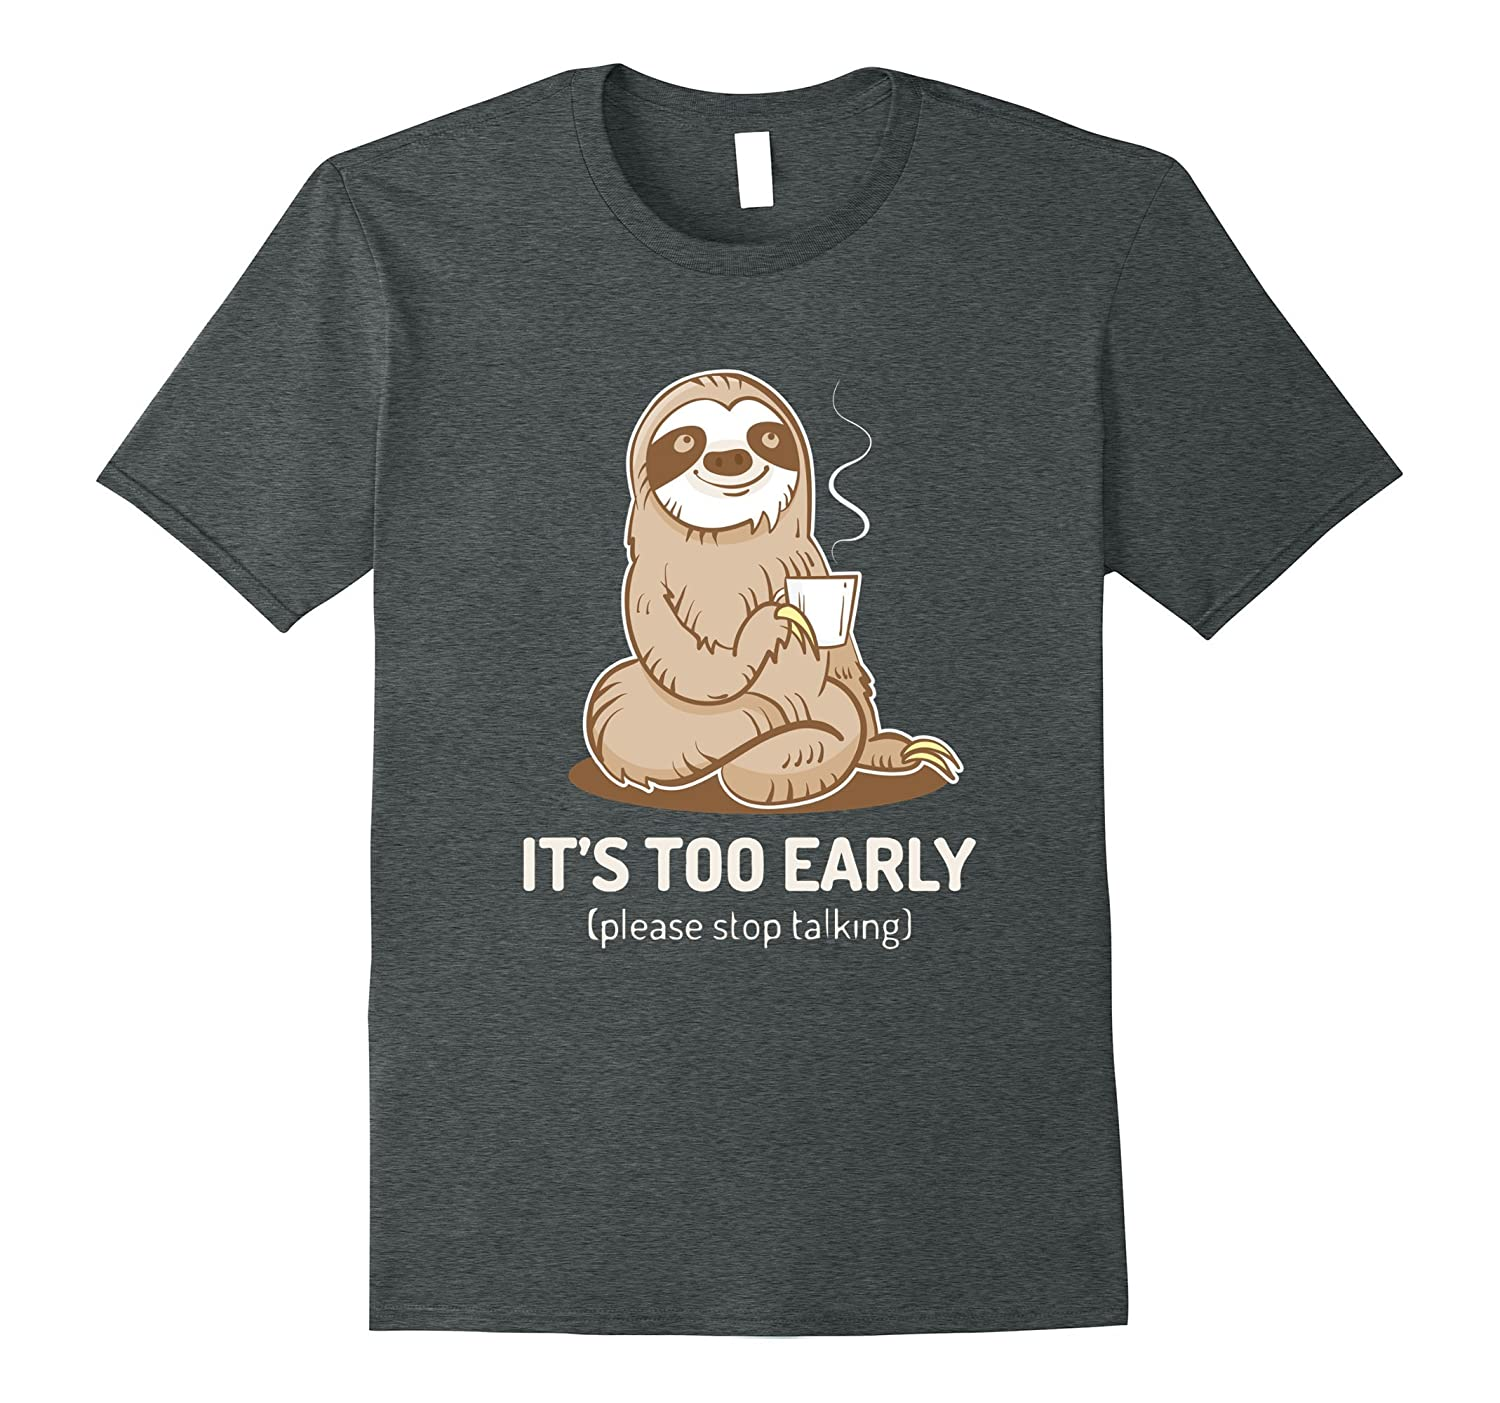 Too early i need a coffee first t-shirt lazy sloth